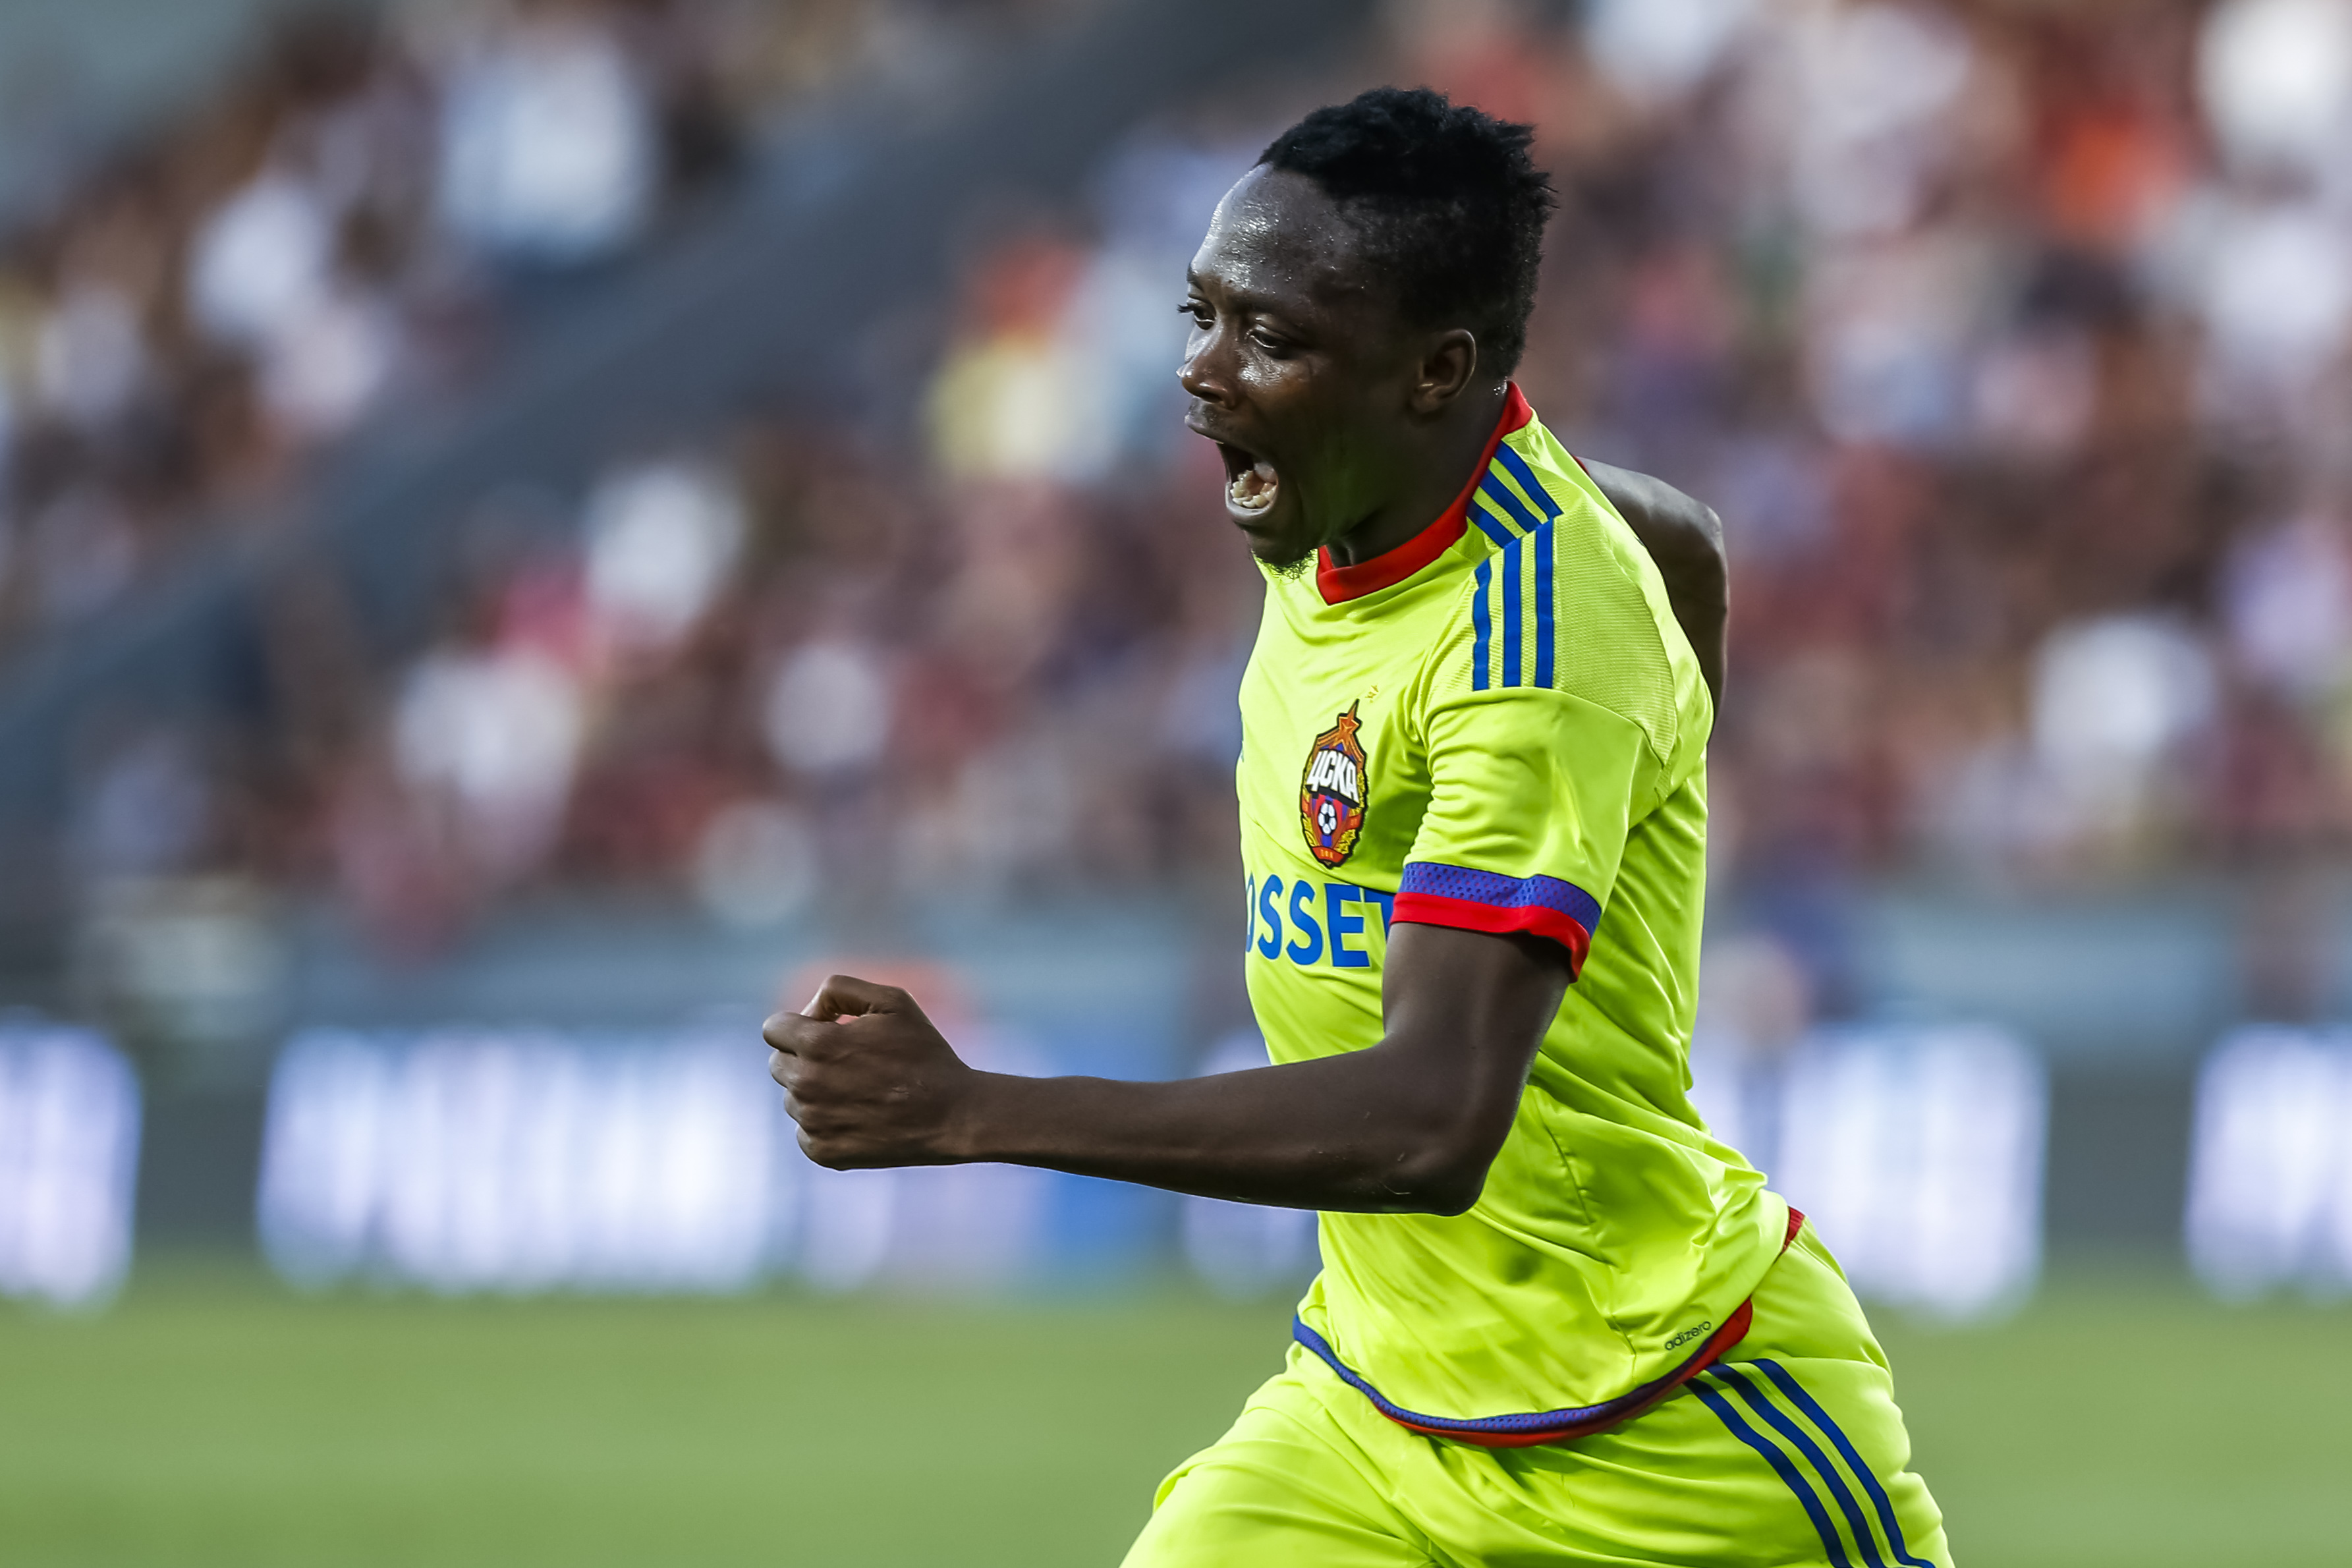 Leicester City agree club record transfer for Ahmed Musa, medical on Wednesday